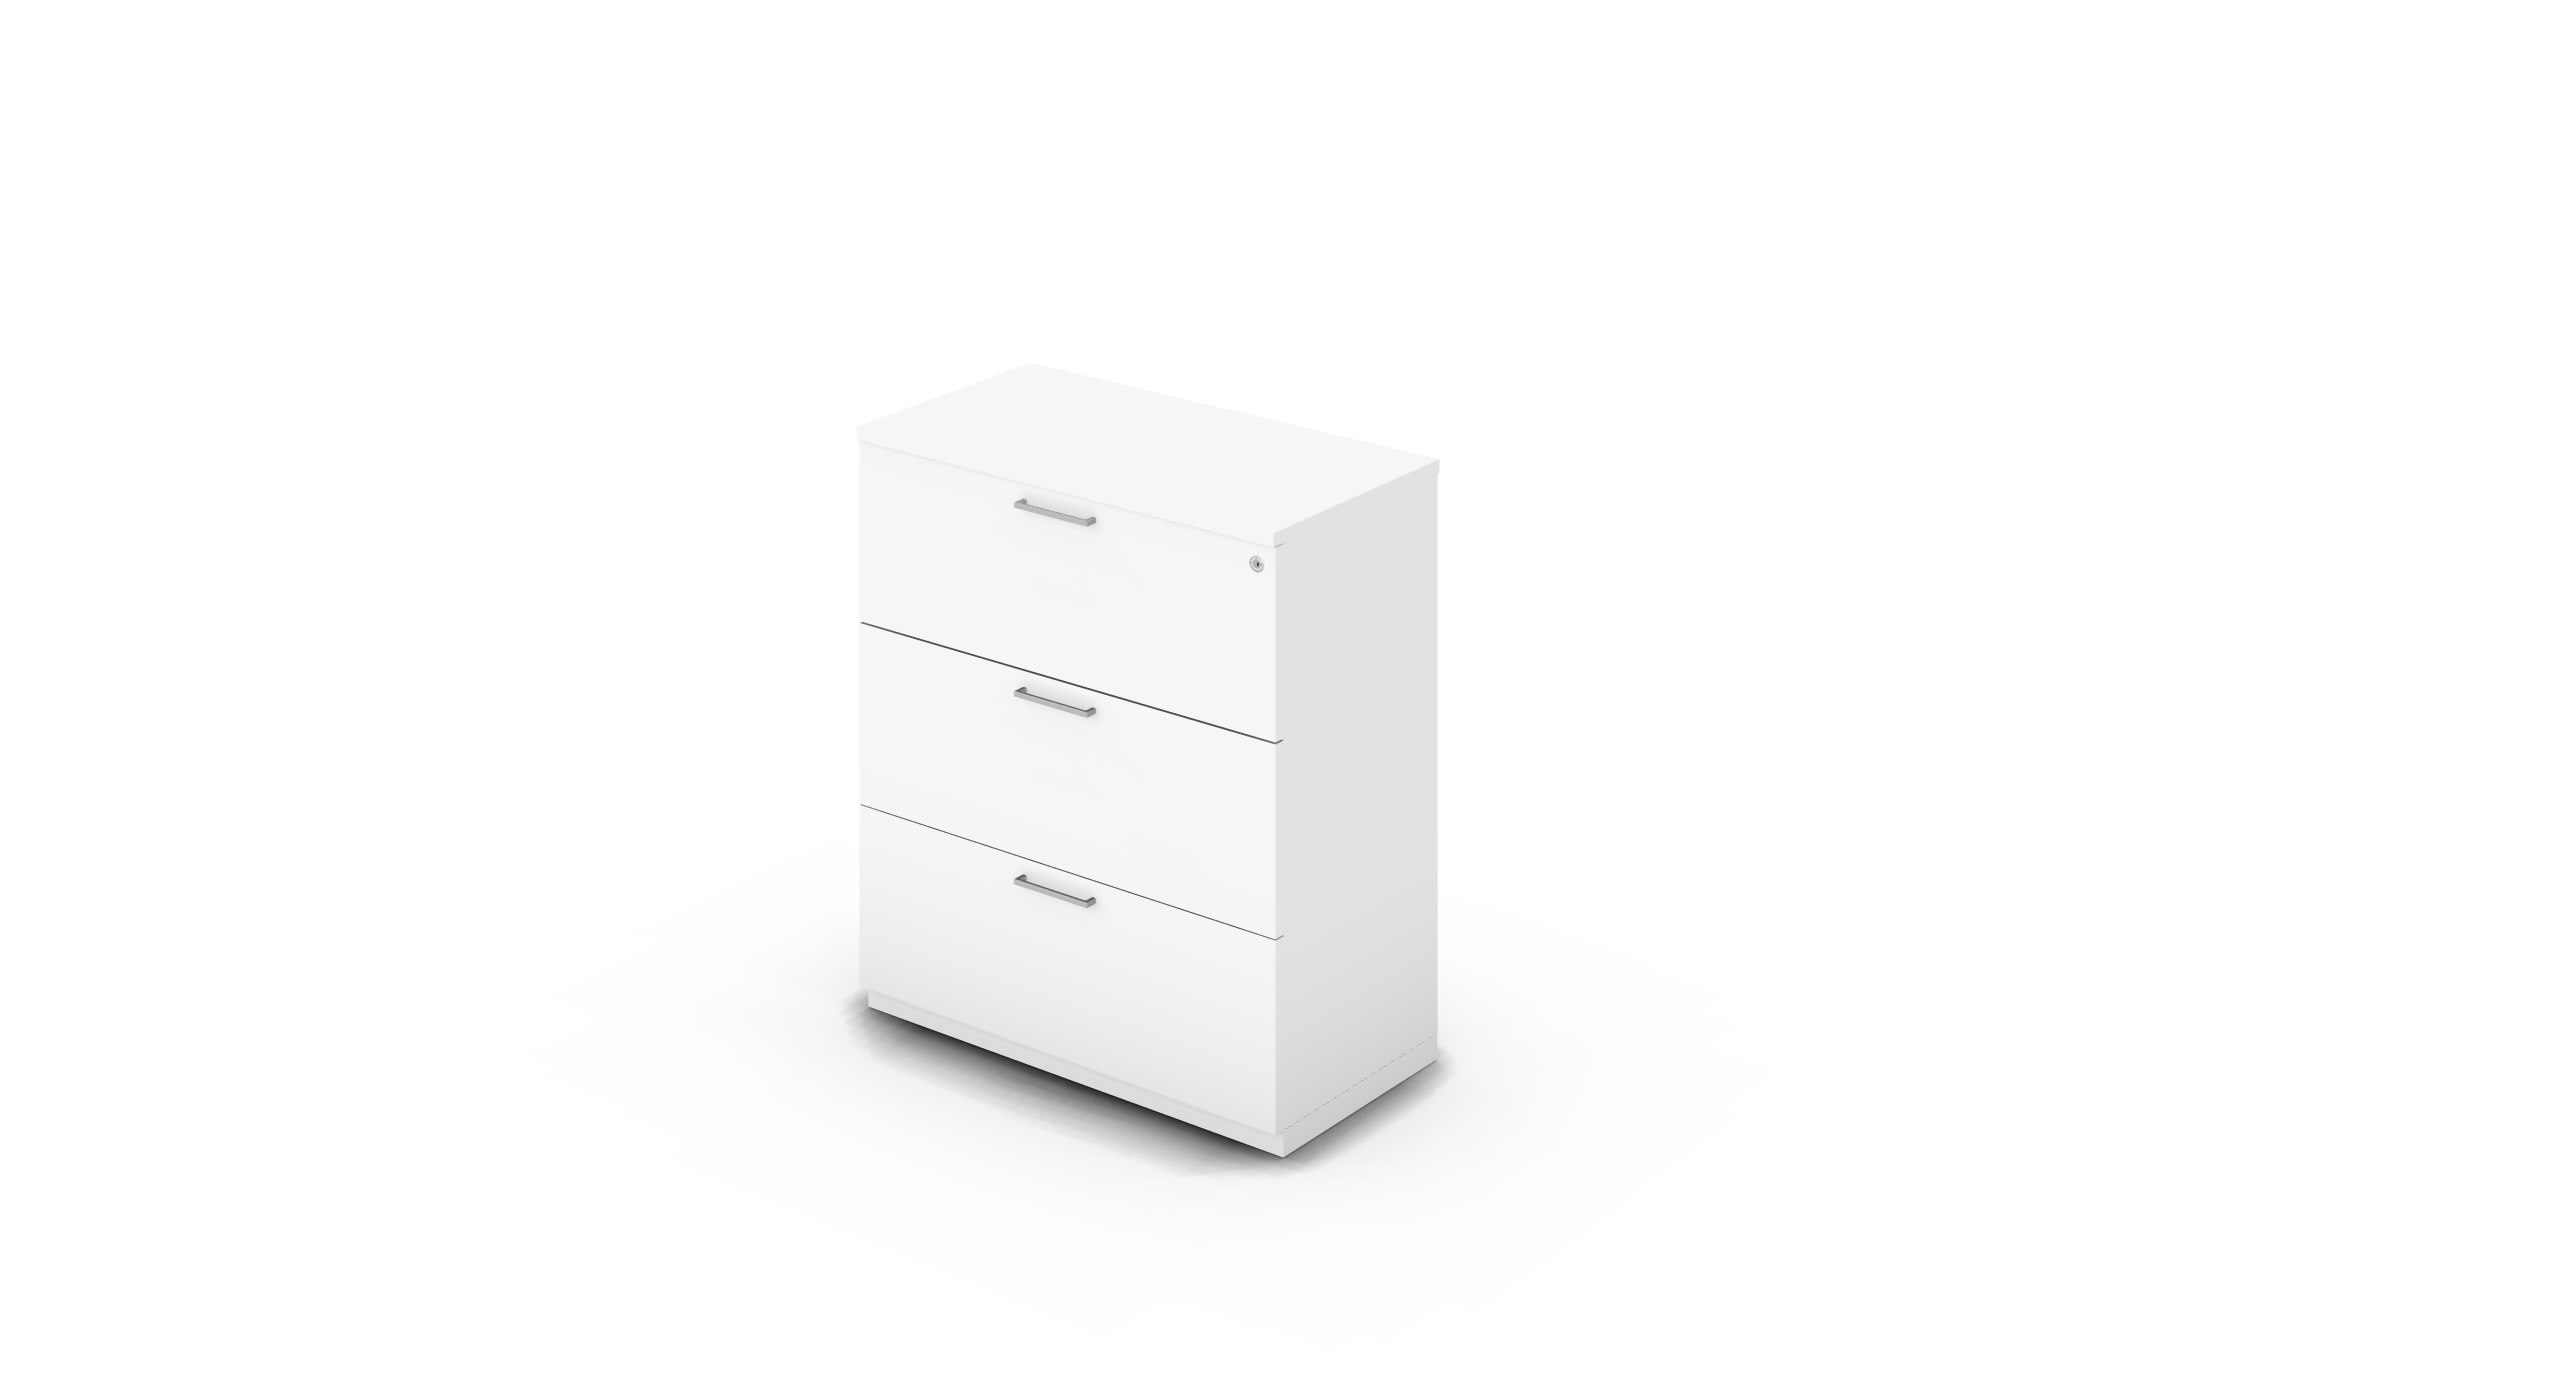 Cabinet_900x450x1125_DR_White_Bar_Square_WithCylinder